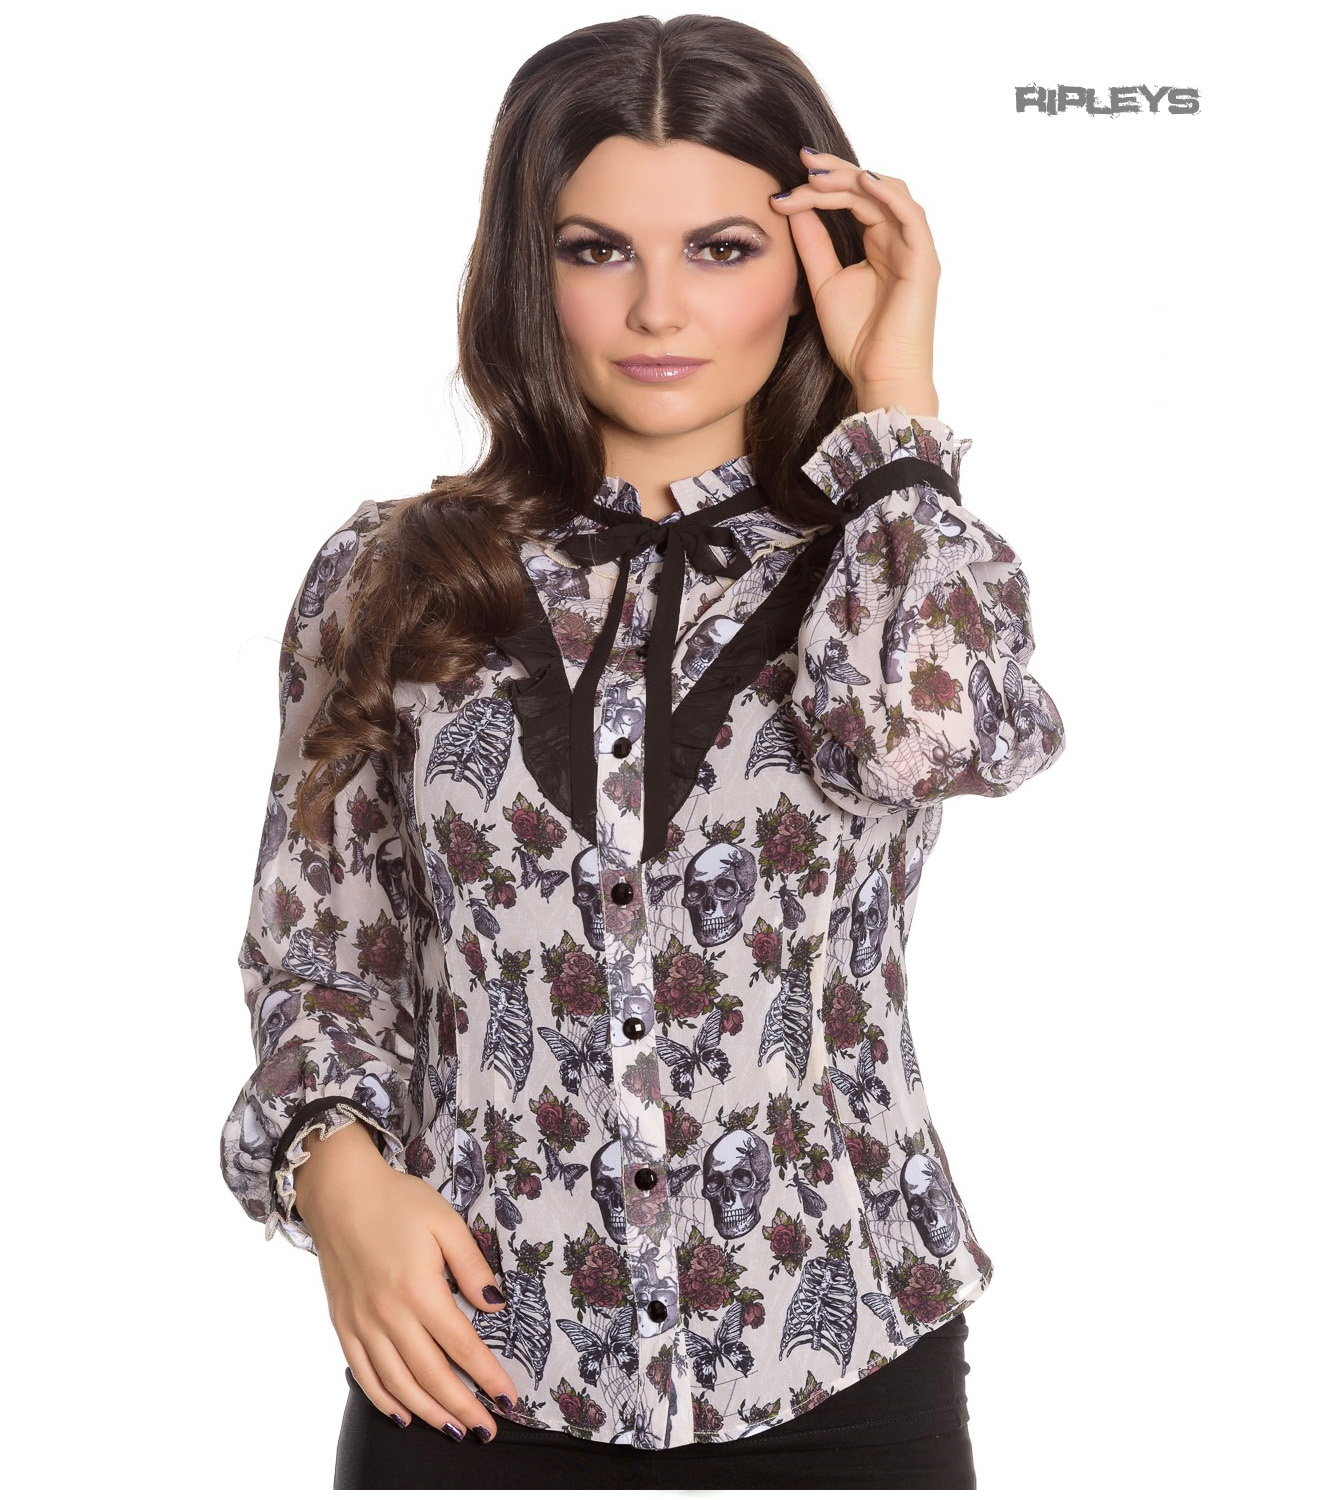 Hell-Bunny-Chiffon-Shirt-Top-Gothic-Skulls-Roses-GRISELDA-Blouse-Ivory-All-Sizes thumbnail 10